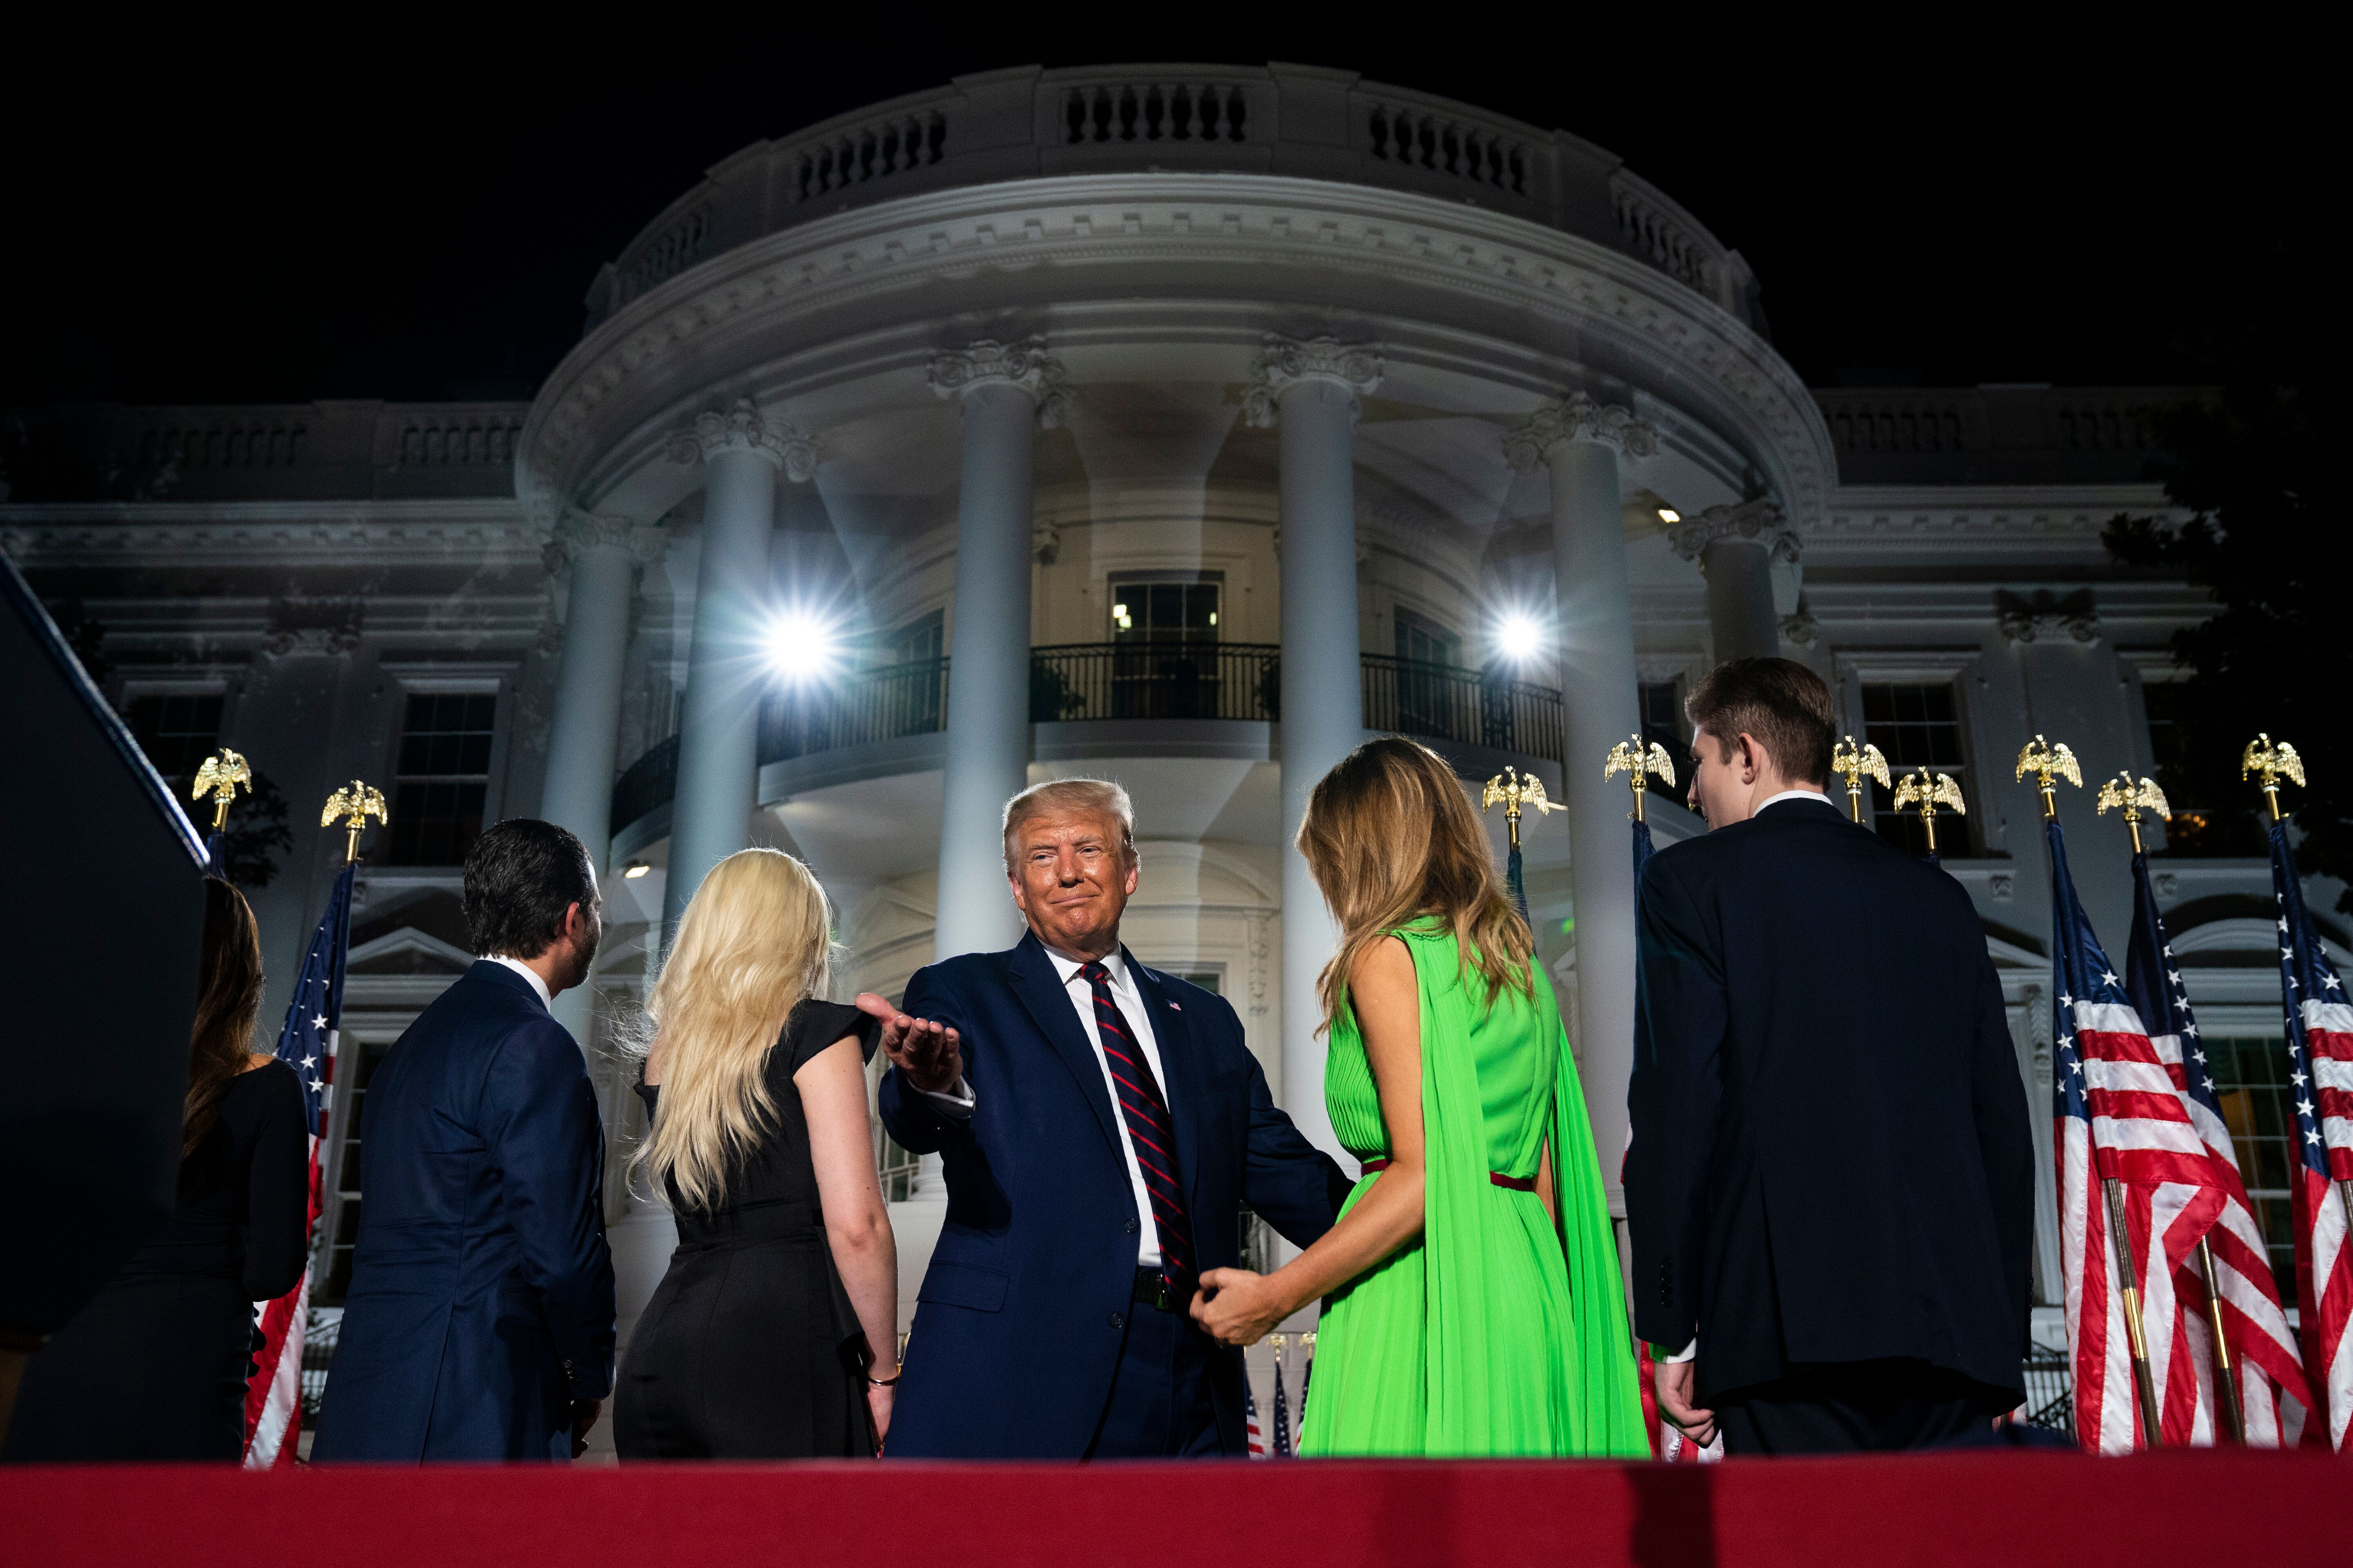 The president and his family standing before the White House — a federal government building they used as a prop for hi